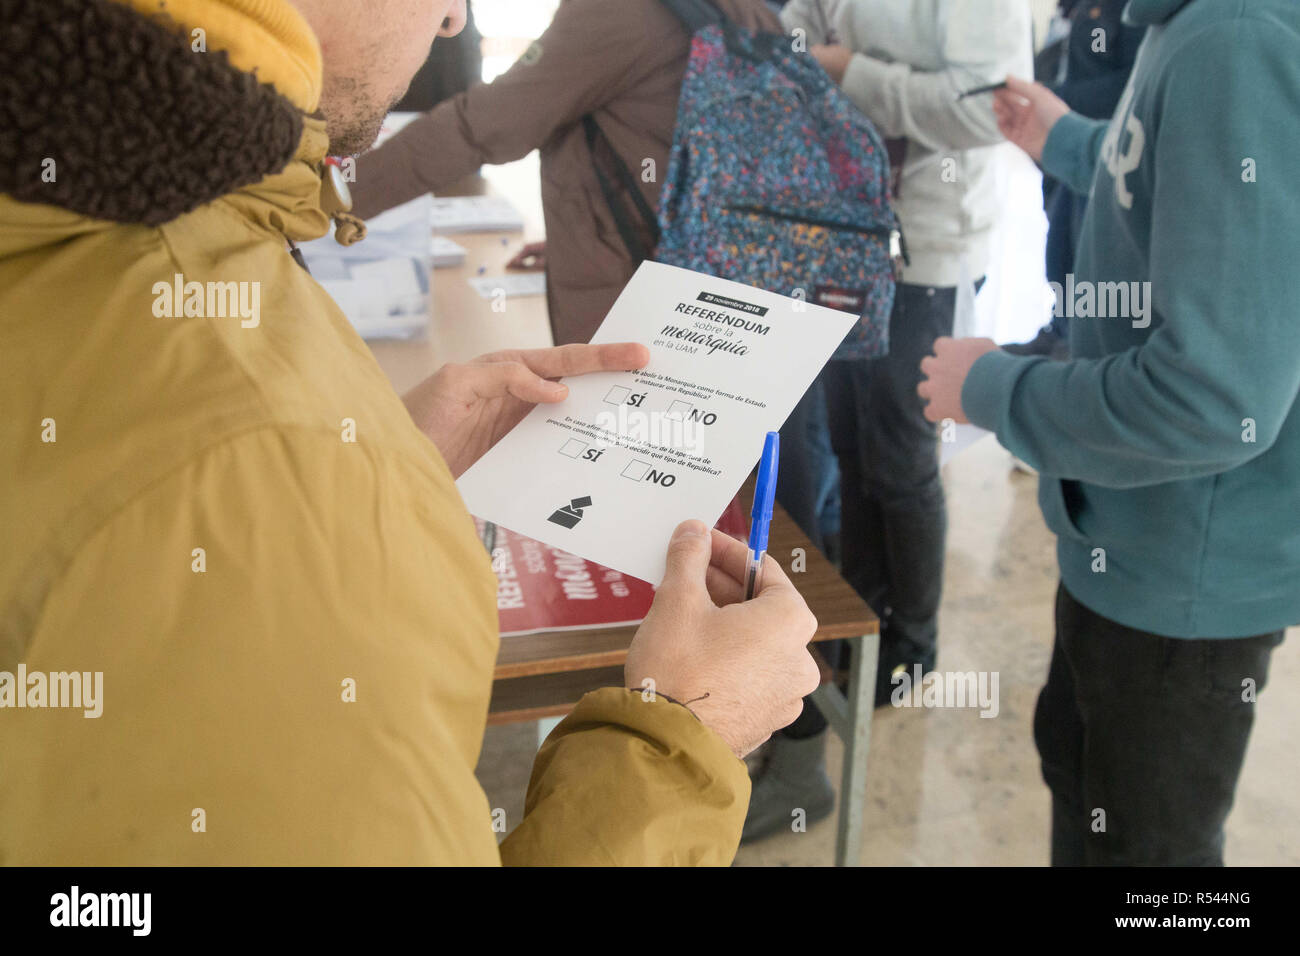 November 29, 2018 - Madrid, Spain - Student seen holding a ballot paper during the voting..Volunteers from the Autonomous University of Madrid initiated the consultative referendum to decide if the thousands of students, professors and workers of the university want a legitimate vote to decide the form of the Spanish state and ask if they prefer monarchy or republic. This vote would mark the first voting date that would be extended to other Spanish universities and Spanish cities. (Credit Image: © Lito Lizana/SOPA Images via ZUMA Wire) - Stock Image